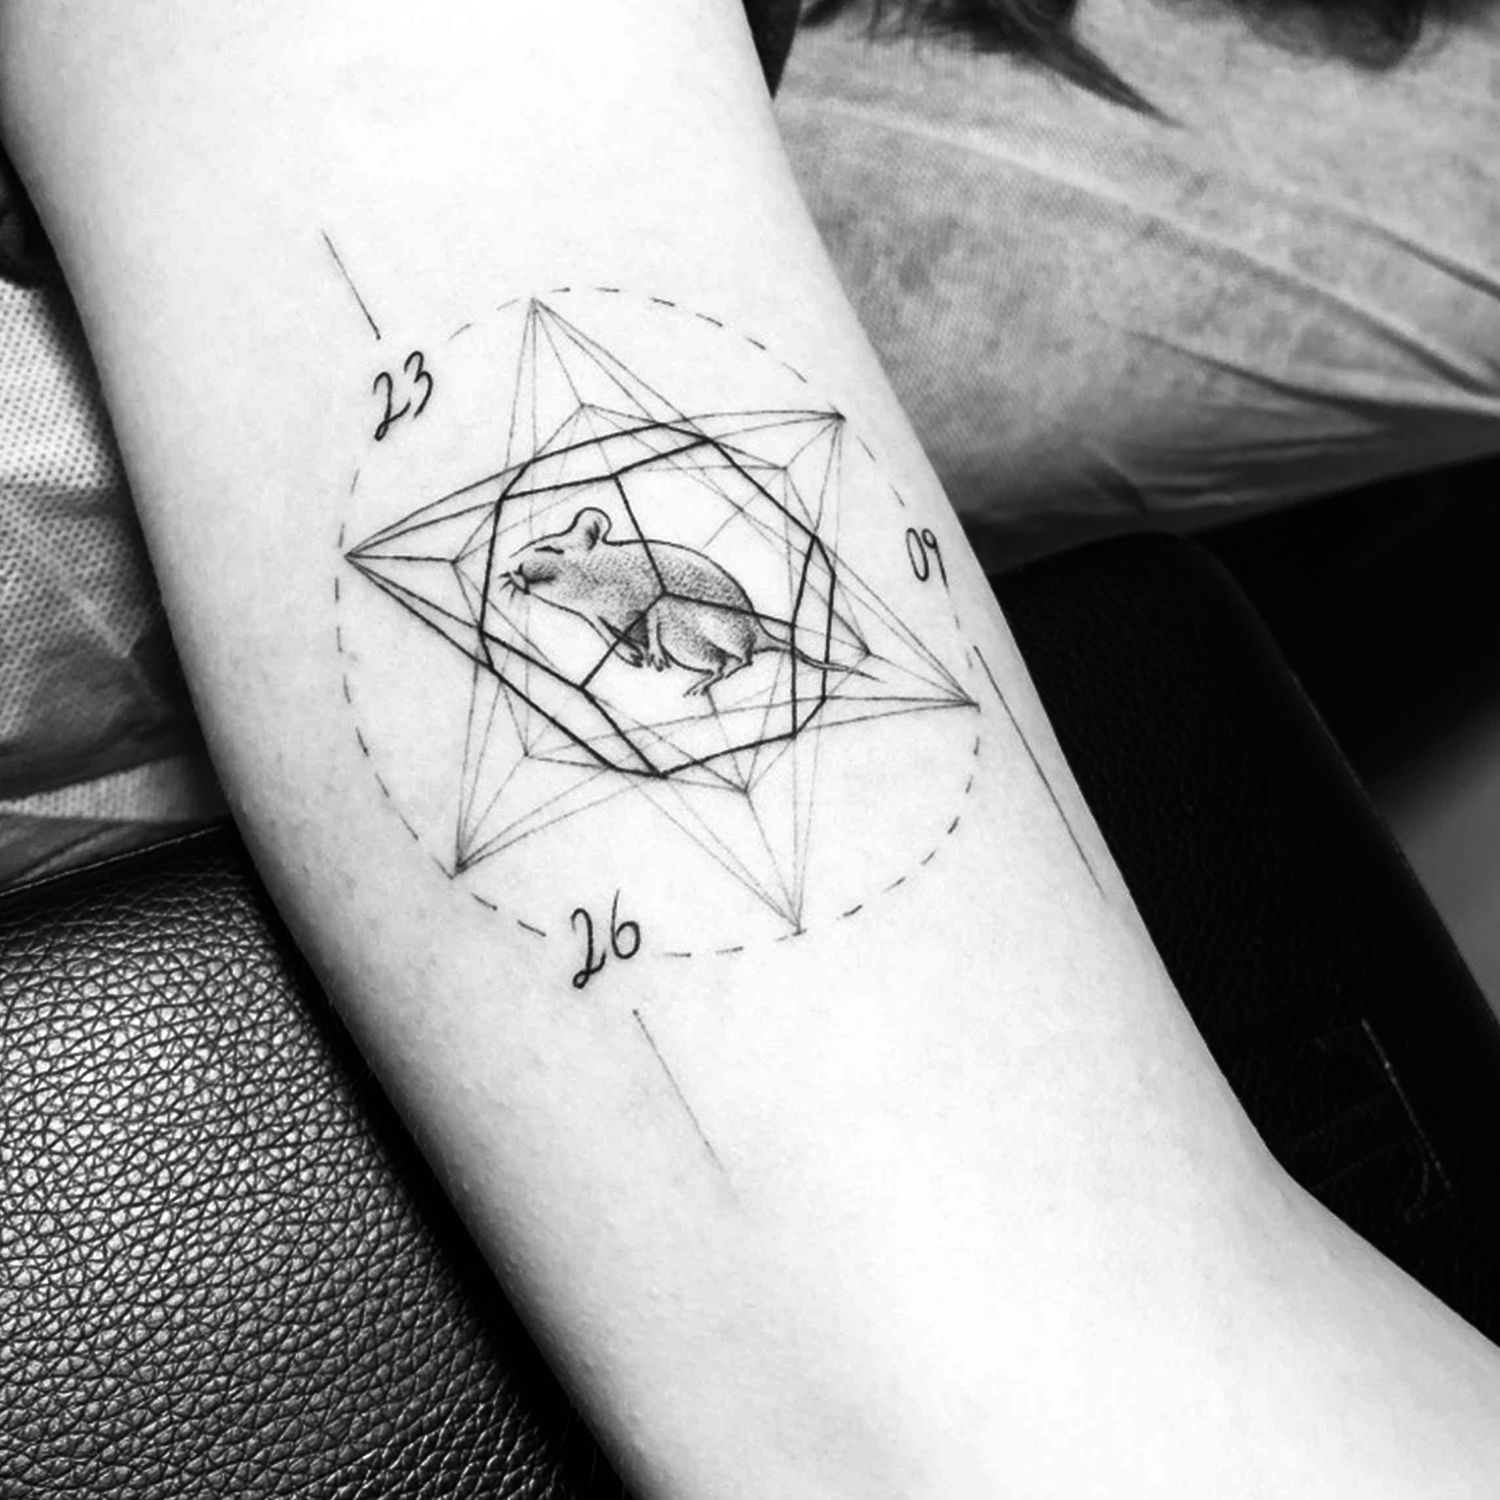 rate in star, linework tattoo